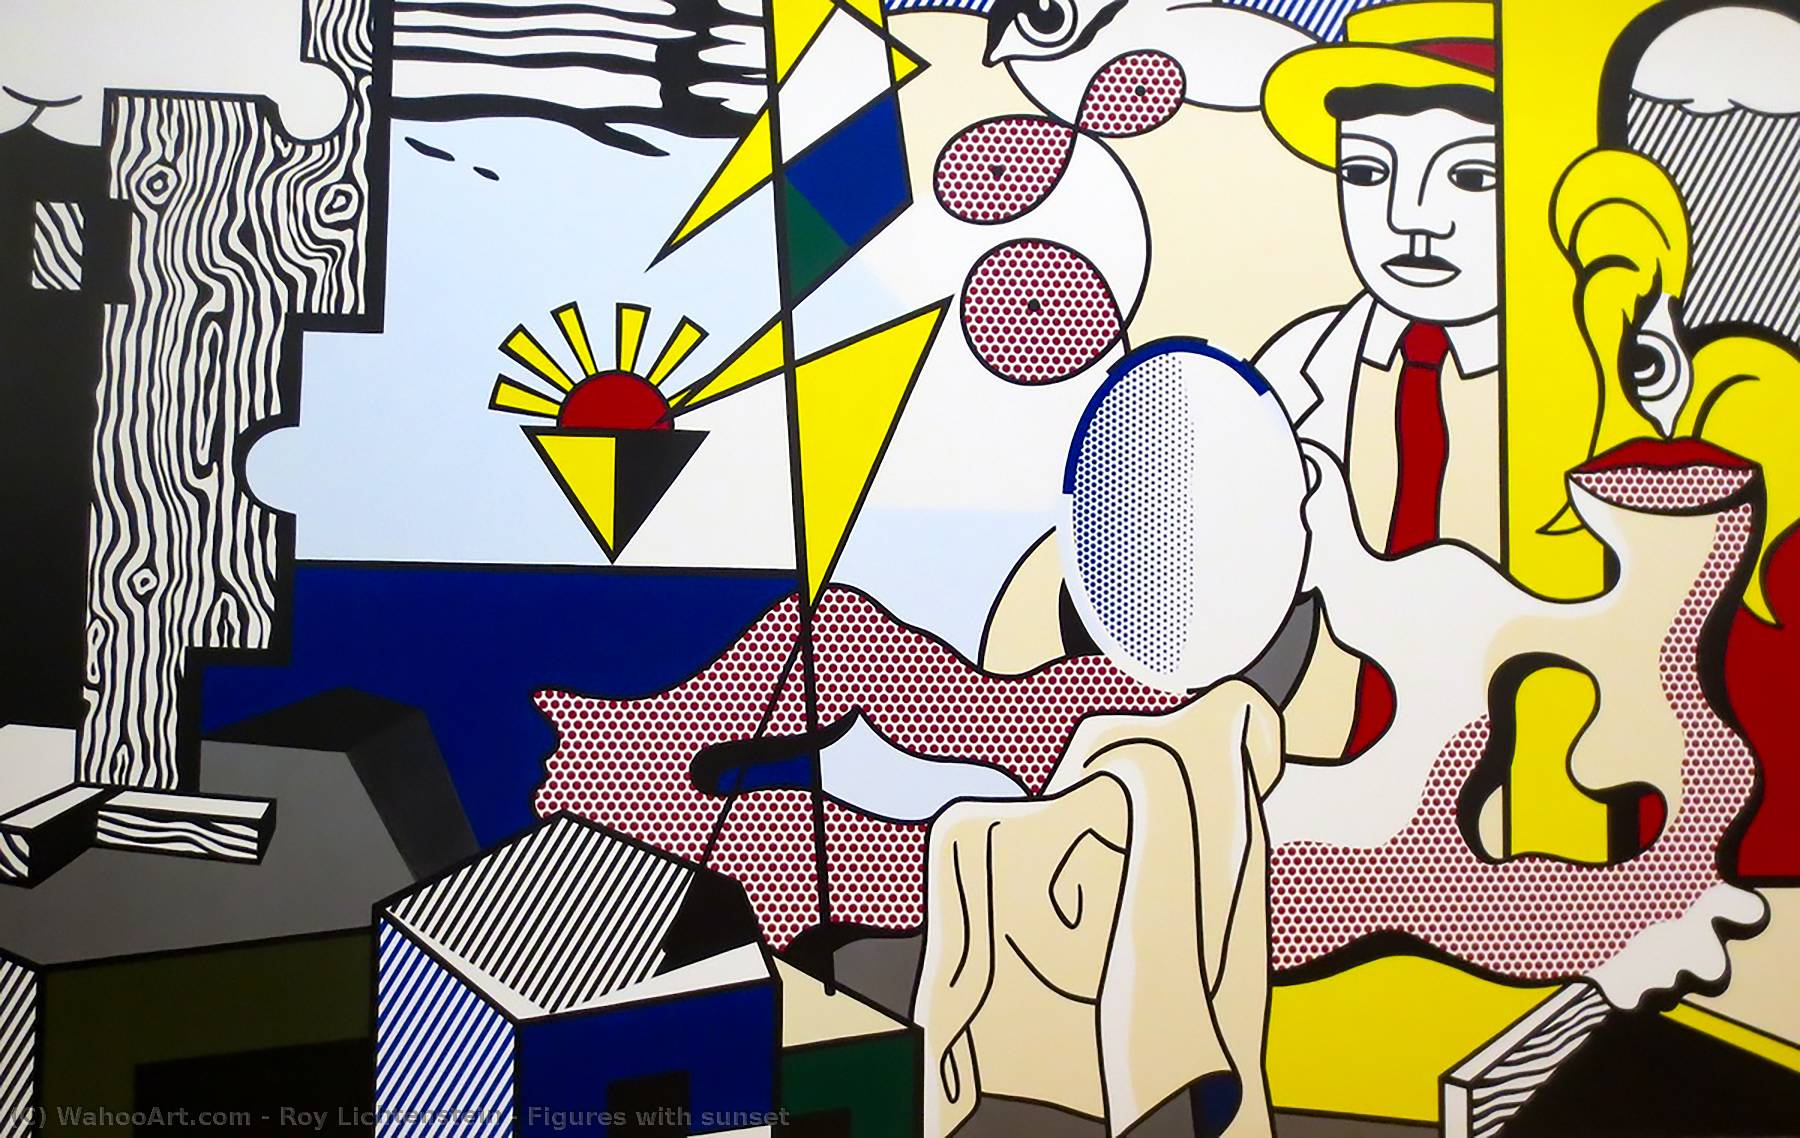 Figures with sunset by Roy Lichtenstein (1923-1997, United States) | Art Reproduction | WahooArt.com